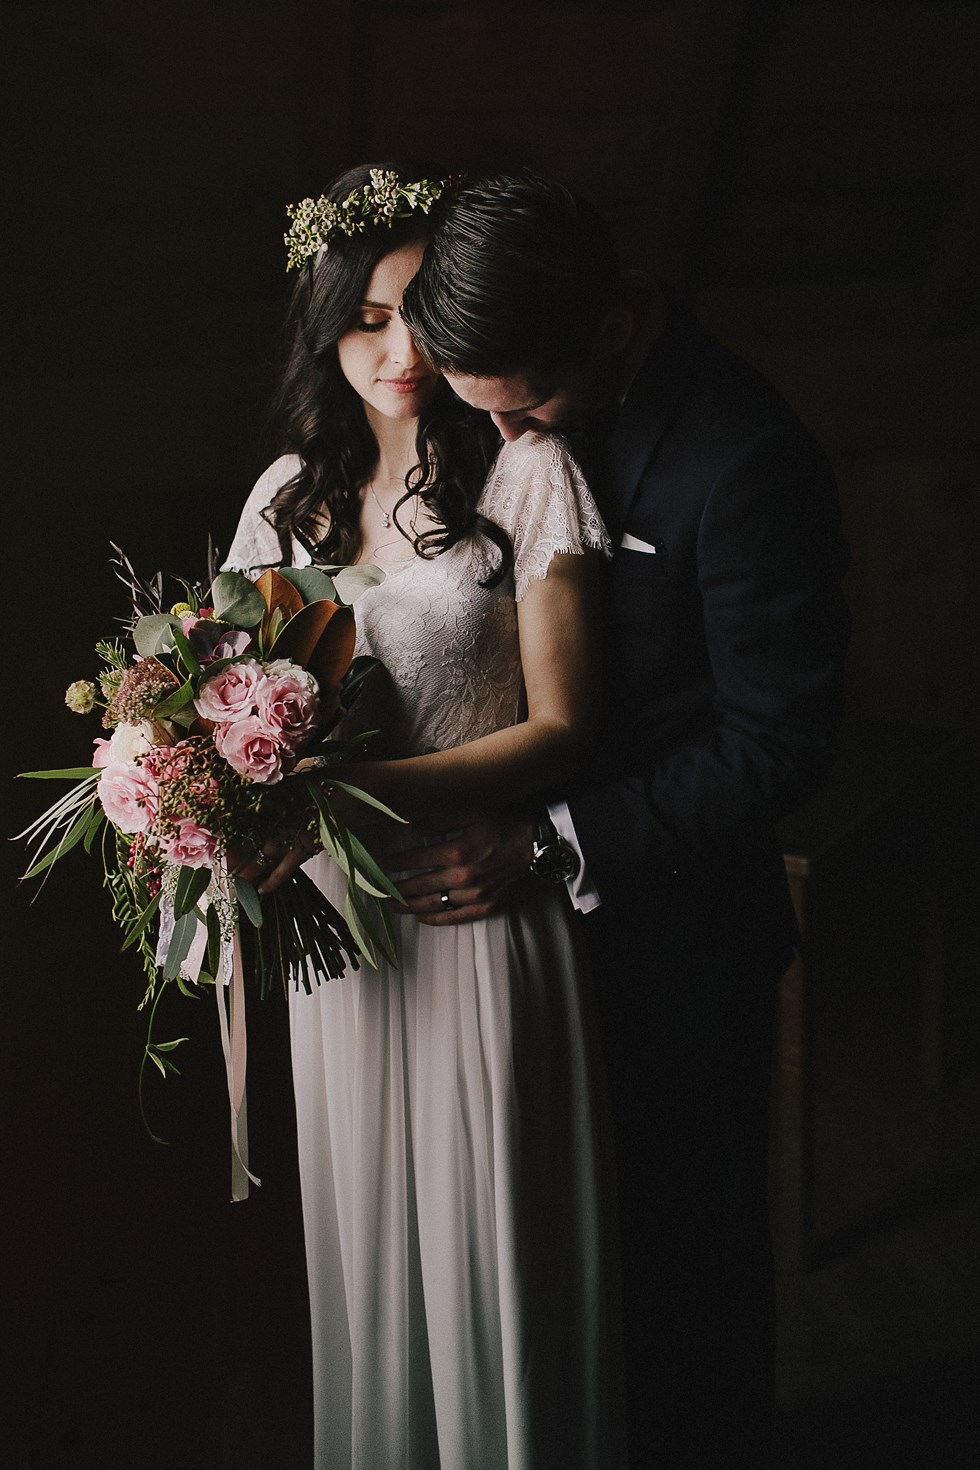 Thesestunning images weretaken by  Ballad Photography